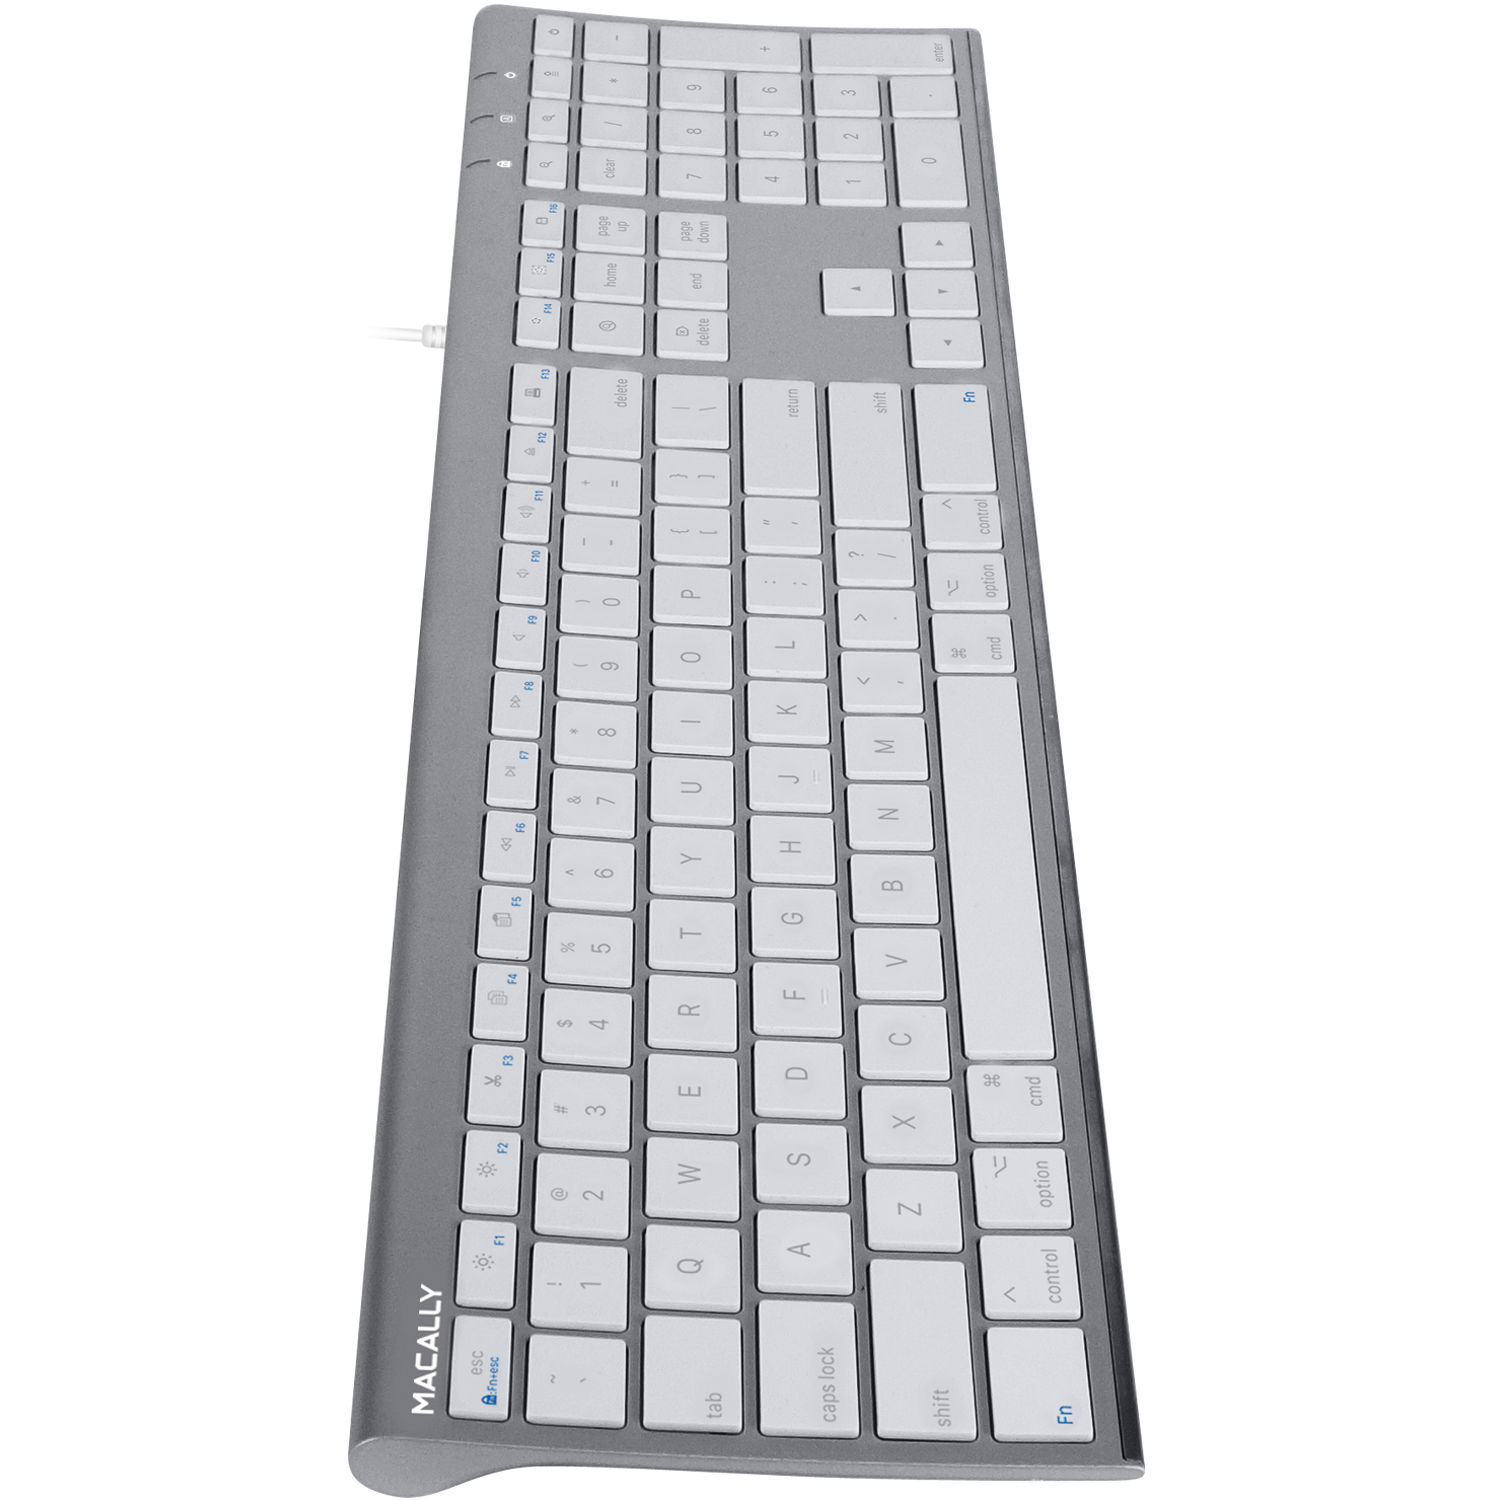 Macally Ultra Slim USB Wired Keyboard (Space Gray)